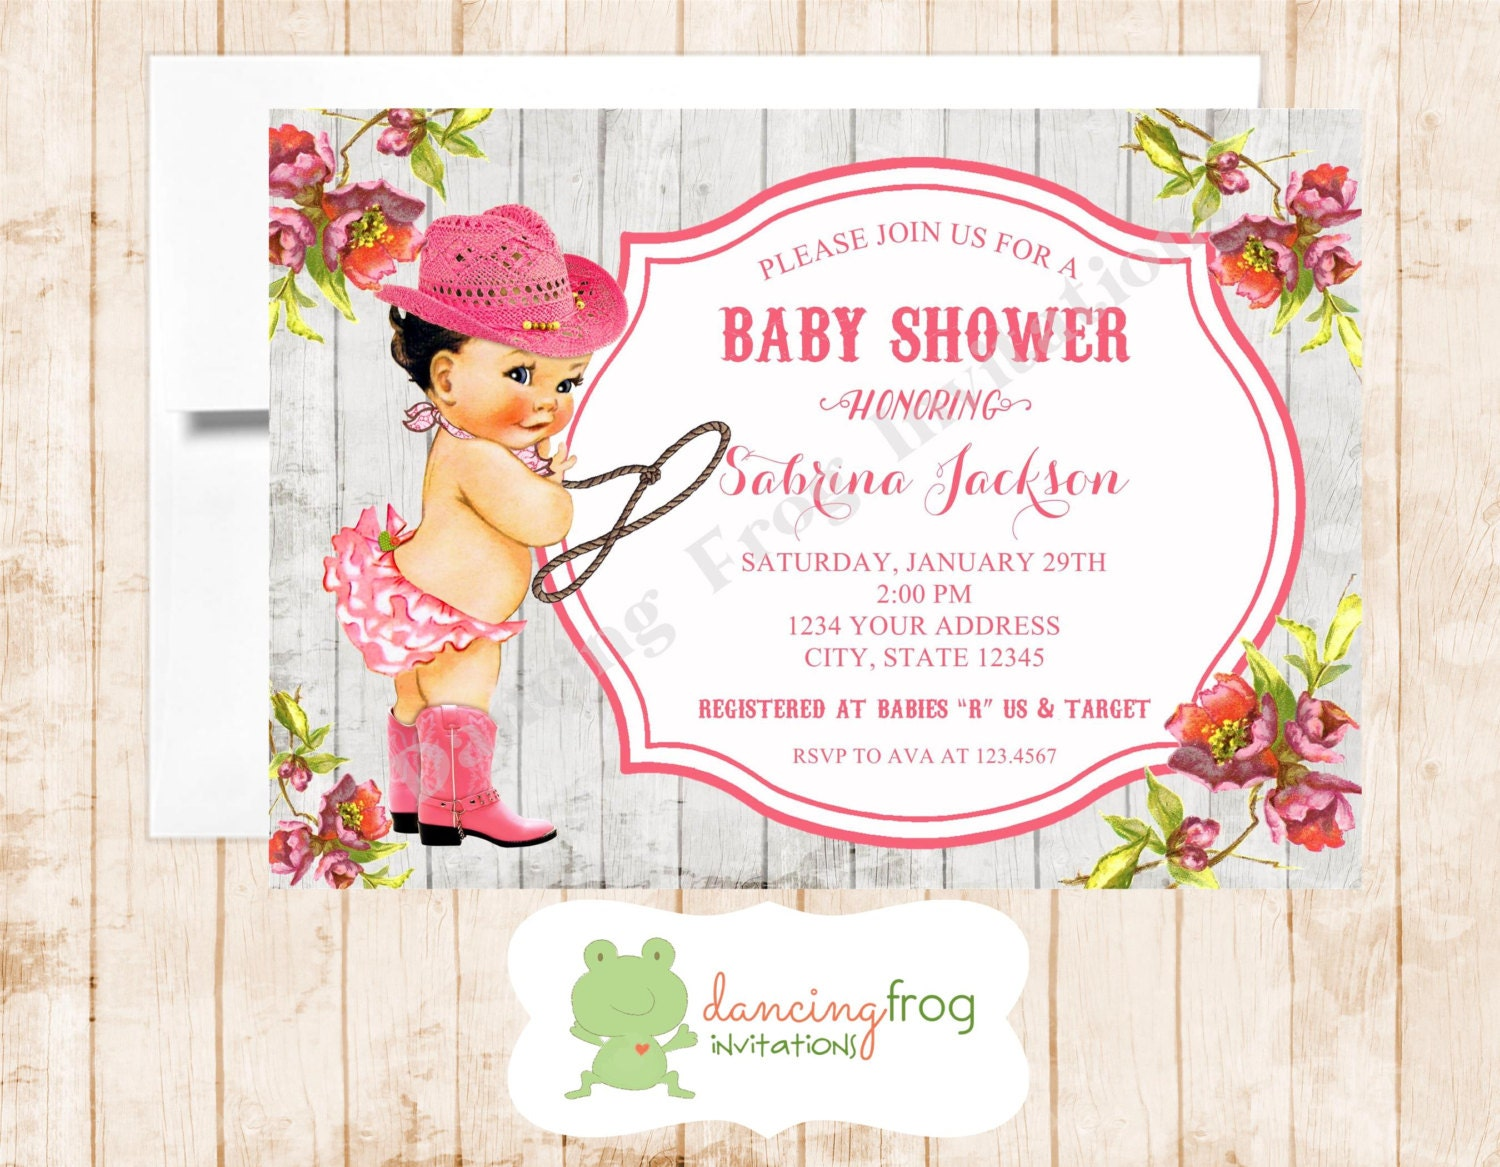 Vintage antique cowgirl baby shower invitation printed etsy vintage antique cowgirl baby shower invitation printed vintage baby shower invitation by dancing frog invita filmwisefo